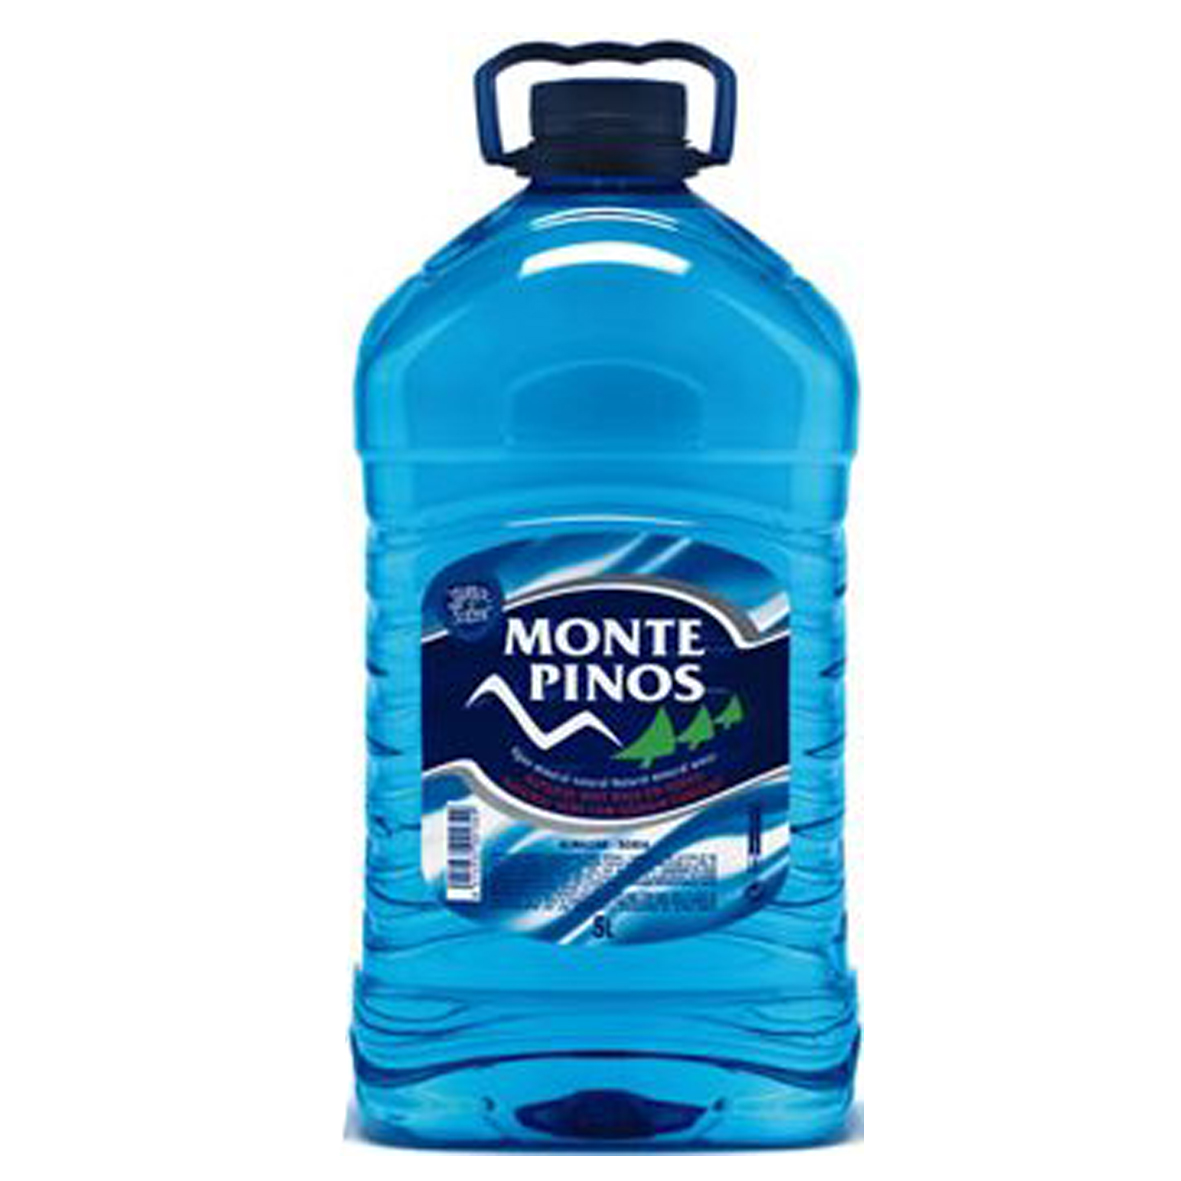 Monte pinos: bergwater 5L